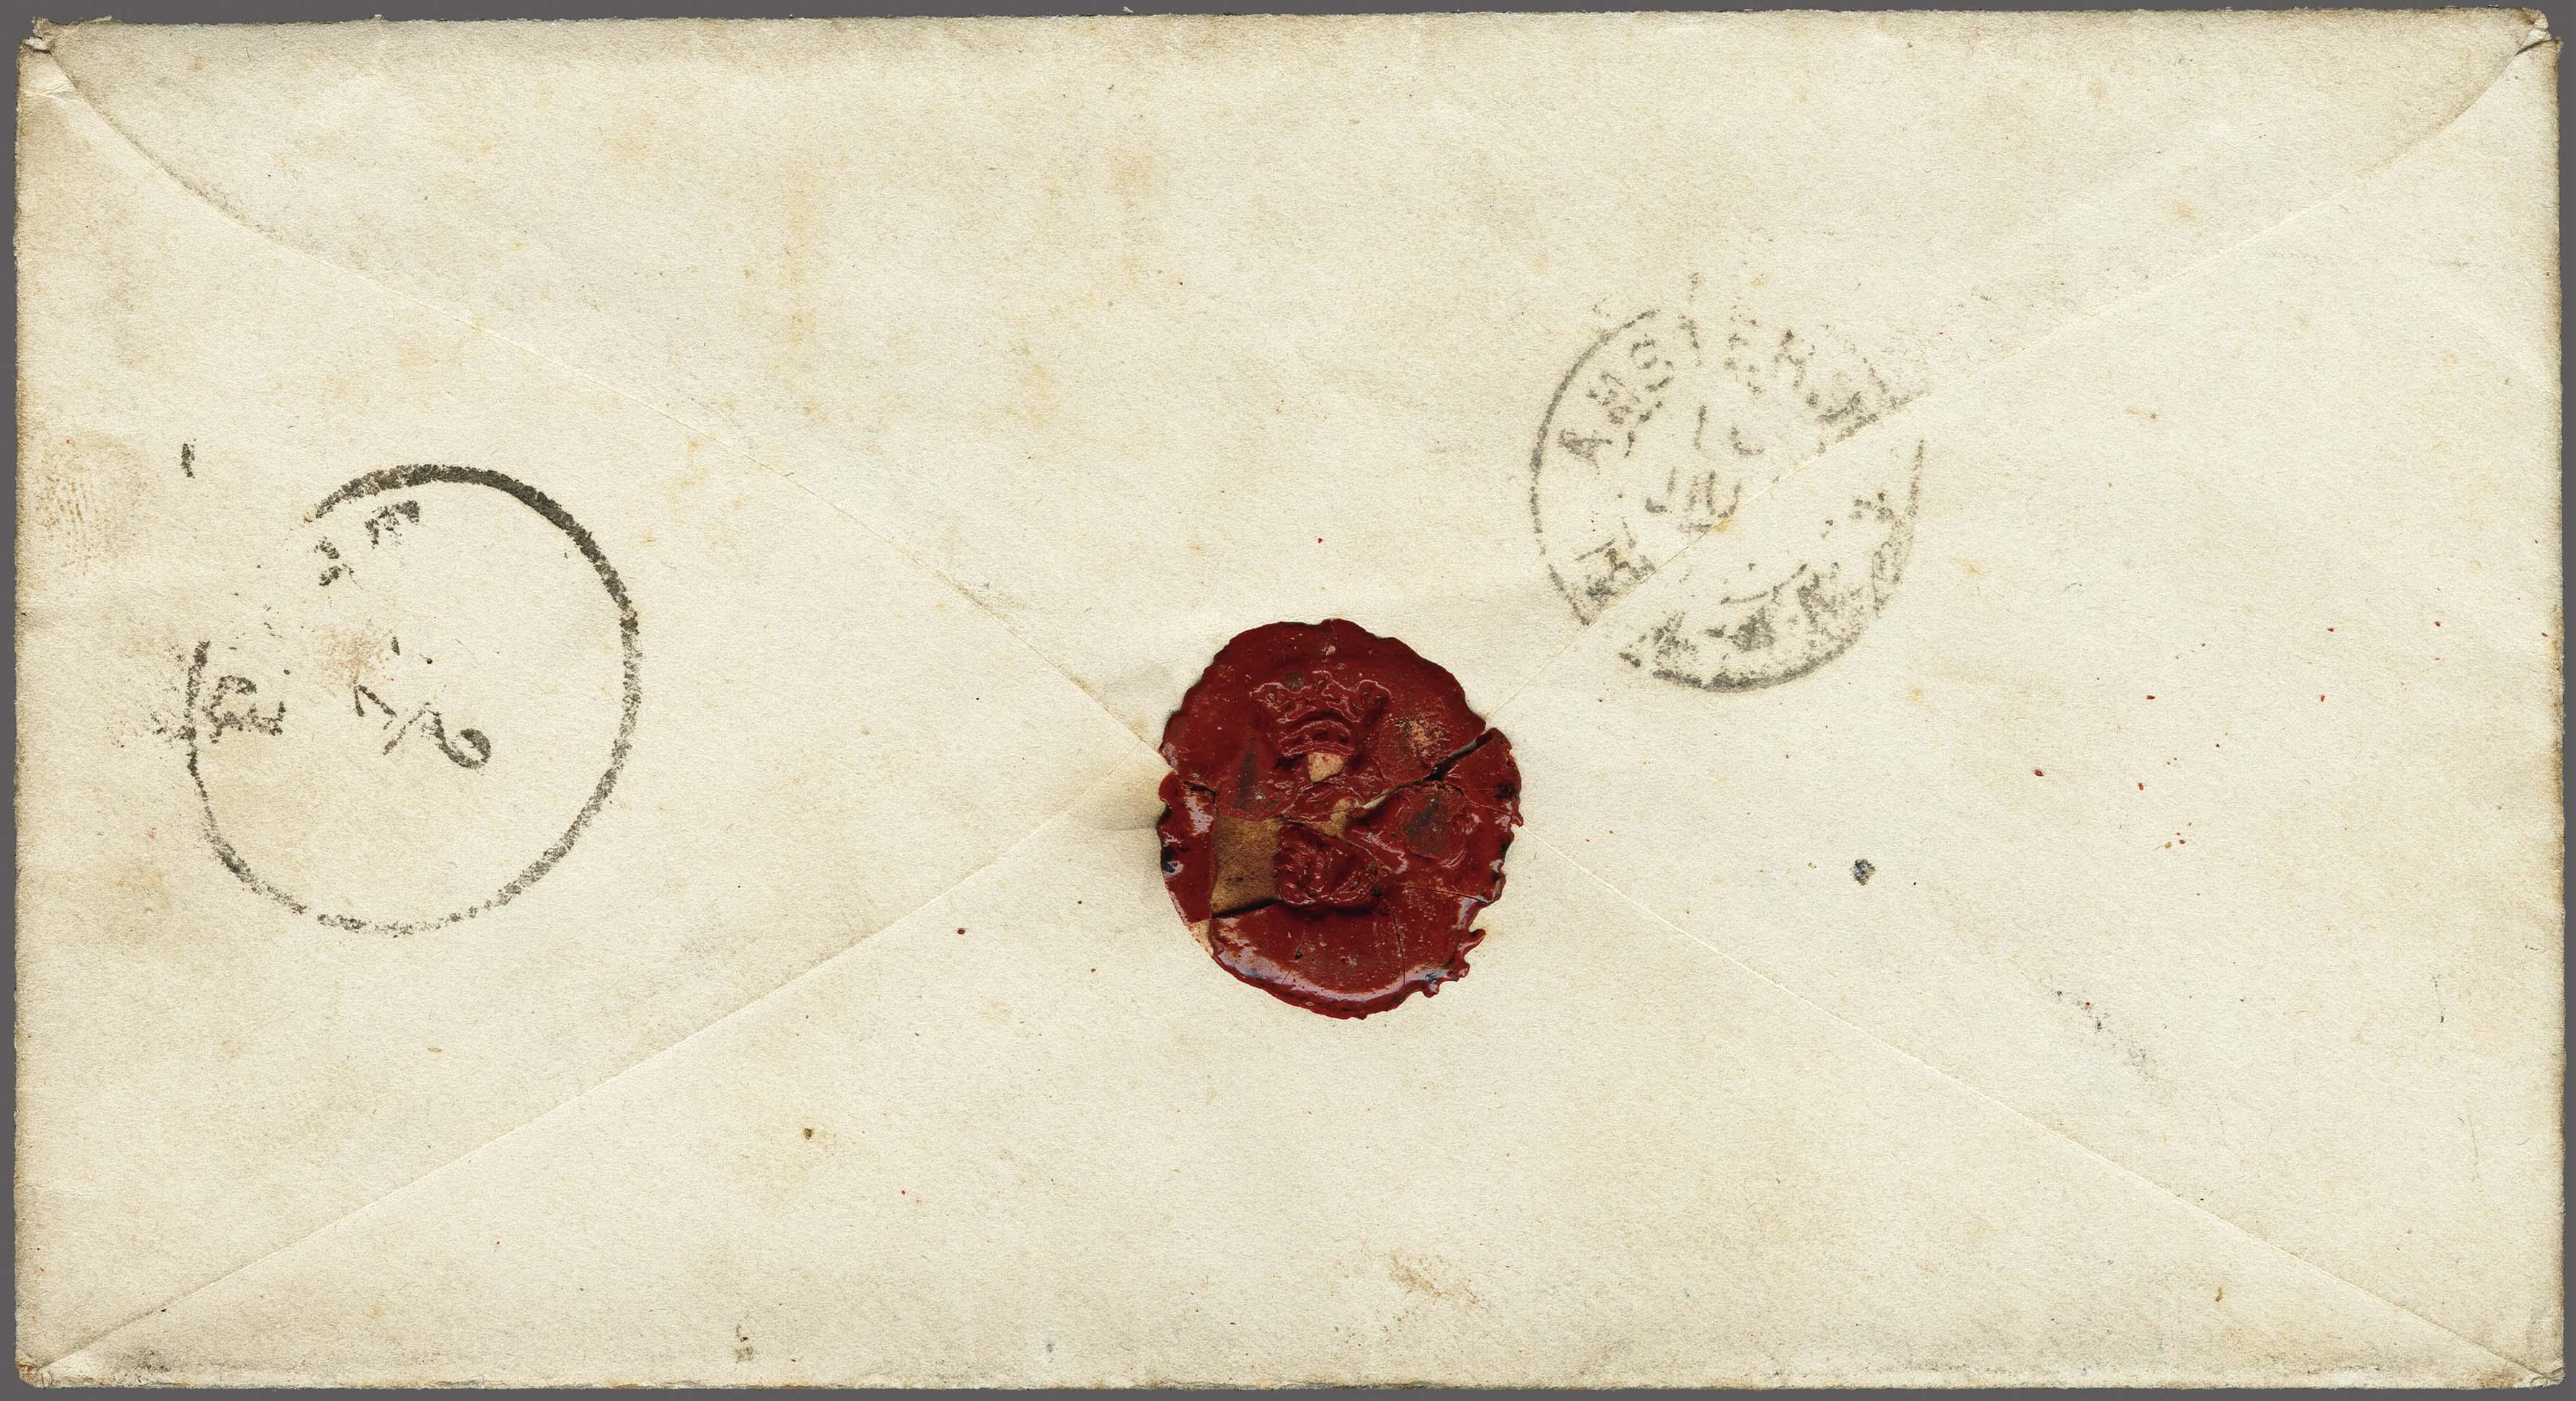 Lot 199 - European Countries Hungary -  Corinphila Veilingen Auction 250-253 - Day 1 - Foreign countries